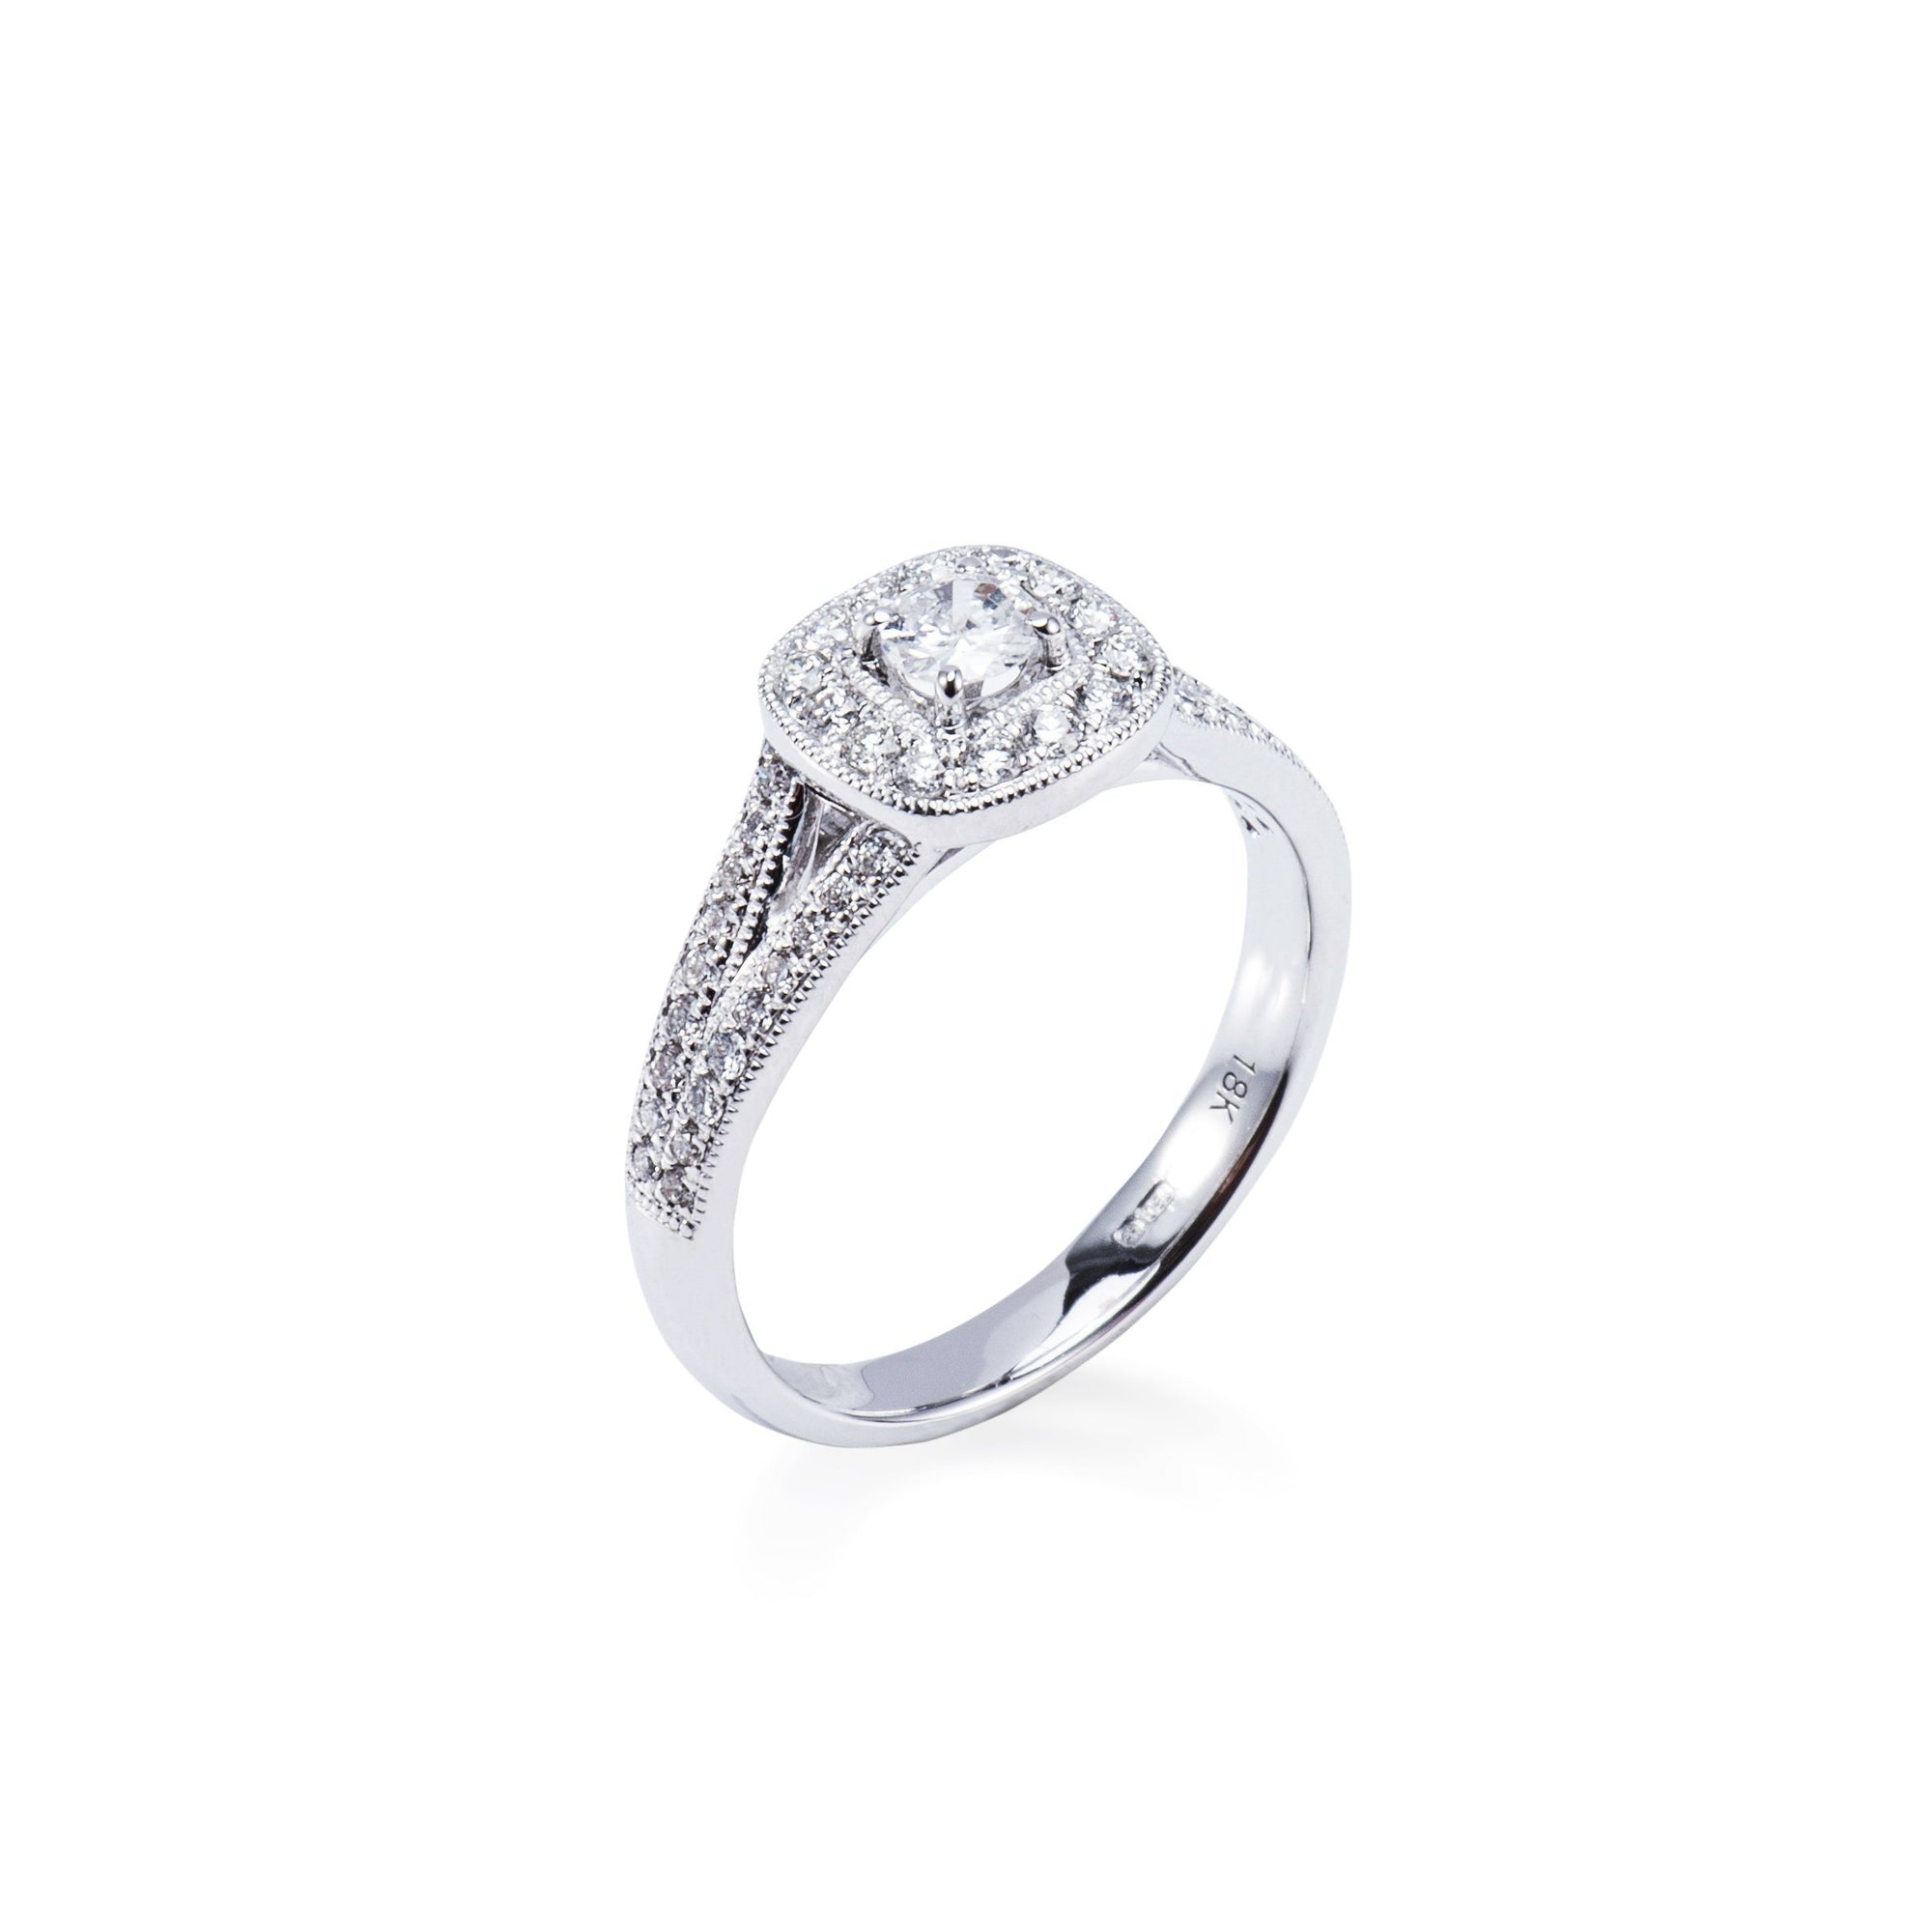 ea49dc19c 18CT WHITE GOLD HALO STYLE DIAMOND ENGAGEMENT RING WITH SPLIT SHOULDERS  Aces Jewellers